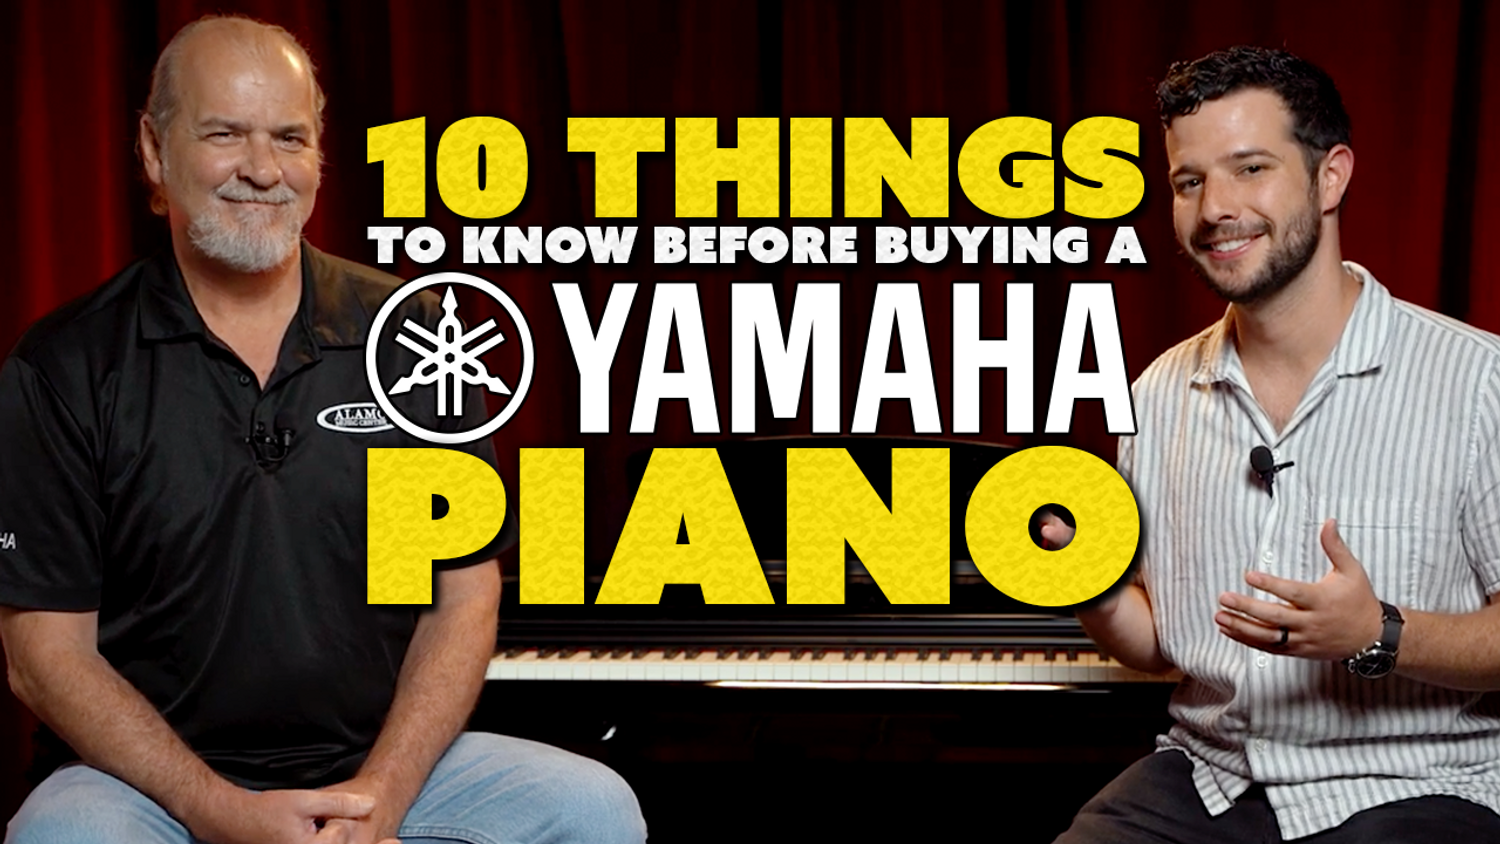 Top 10 Things To Know Before Buying A Yamaha Piano